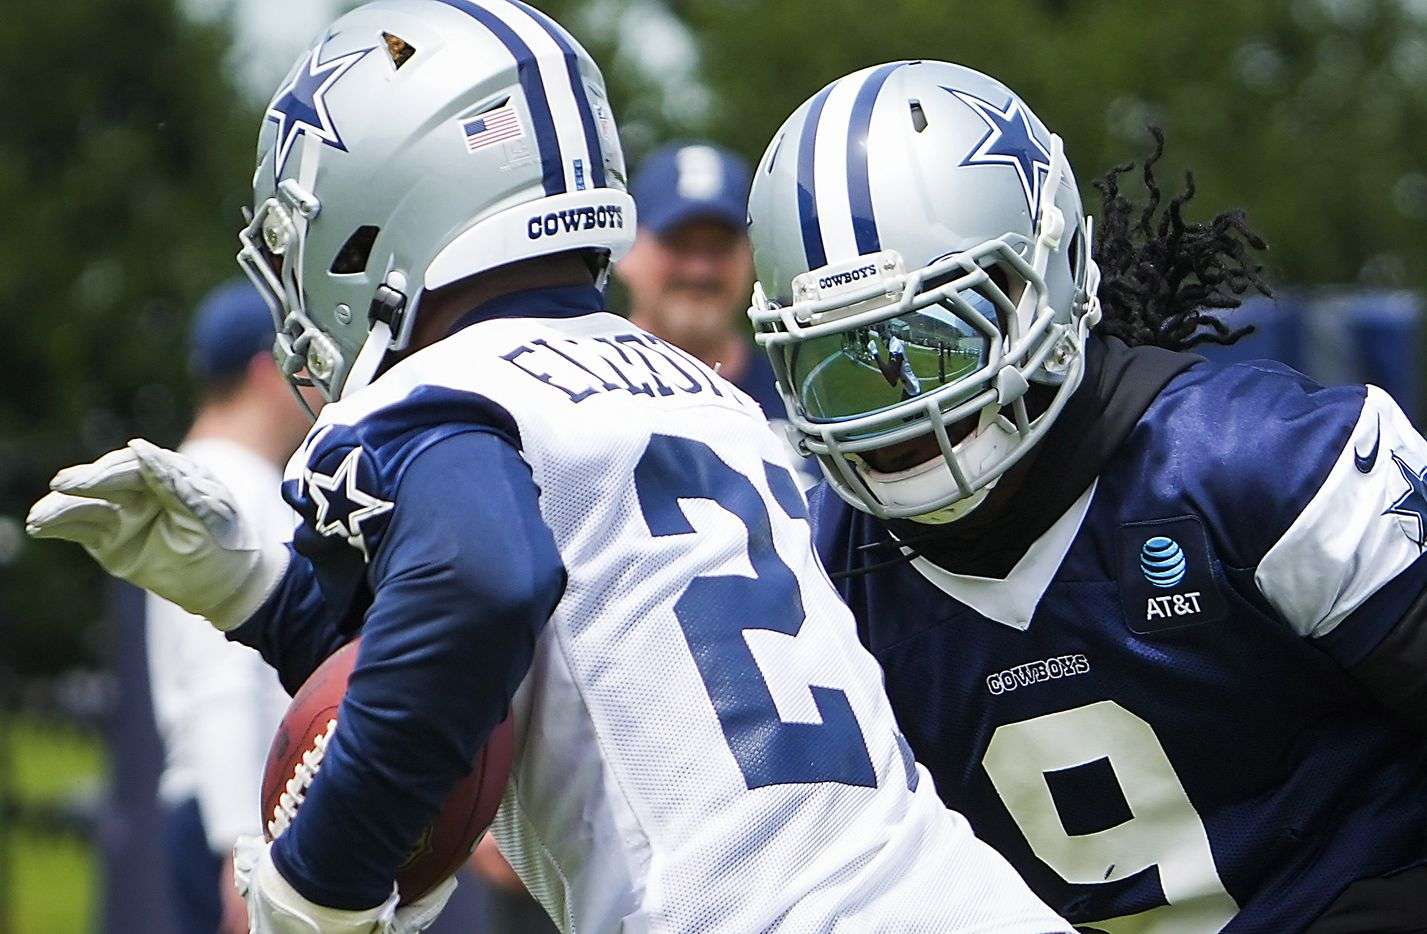 Dallas Cowboys linebacker Jaylon Smith (9) chases running back Ezekiel Elliott (21) during a minicamp practice at The Star on Tuesday, June 8, 2021, in Frisco. (Smiley N. Pool/The Dallas Morning News)